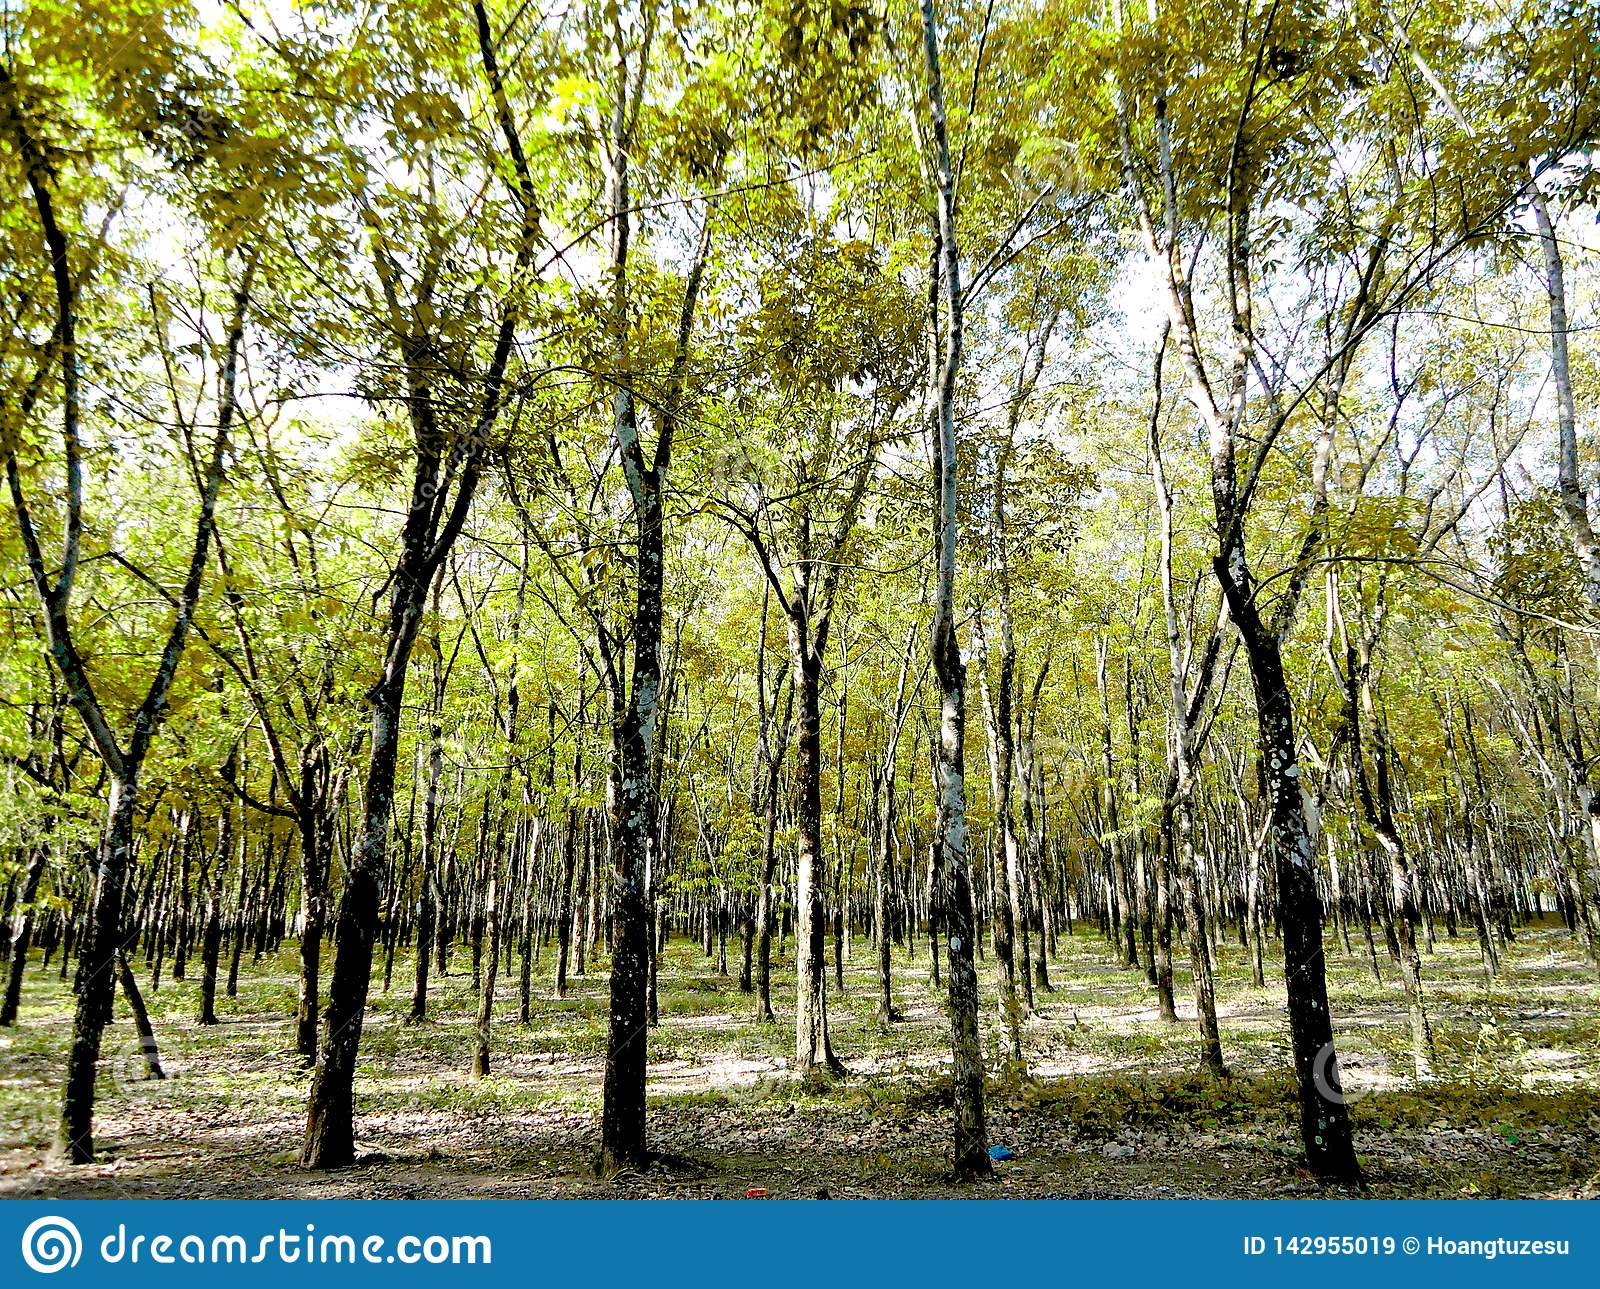 Rubber Trees, Industrial Plants, Long-day Plants Stock Image